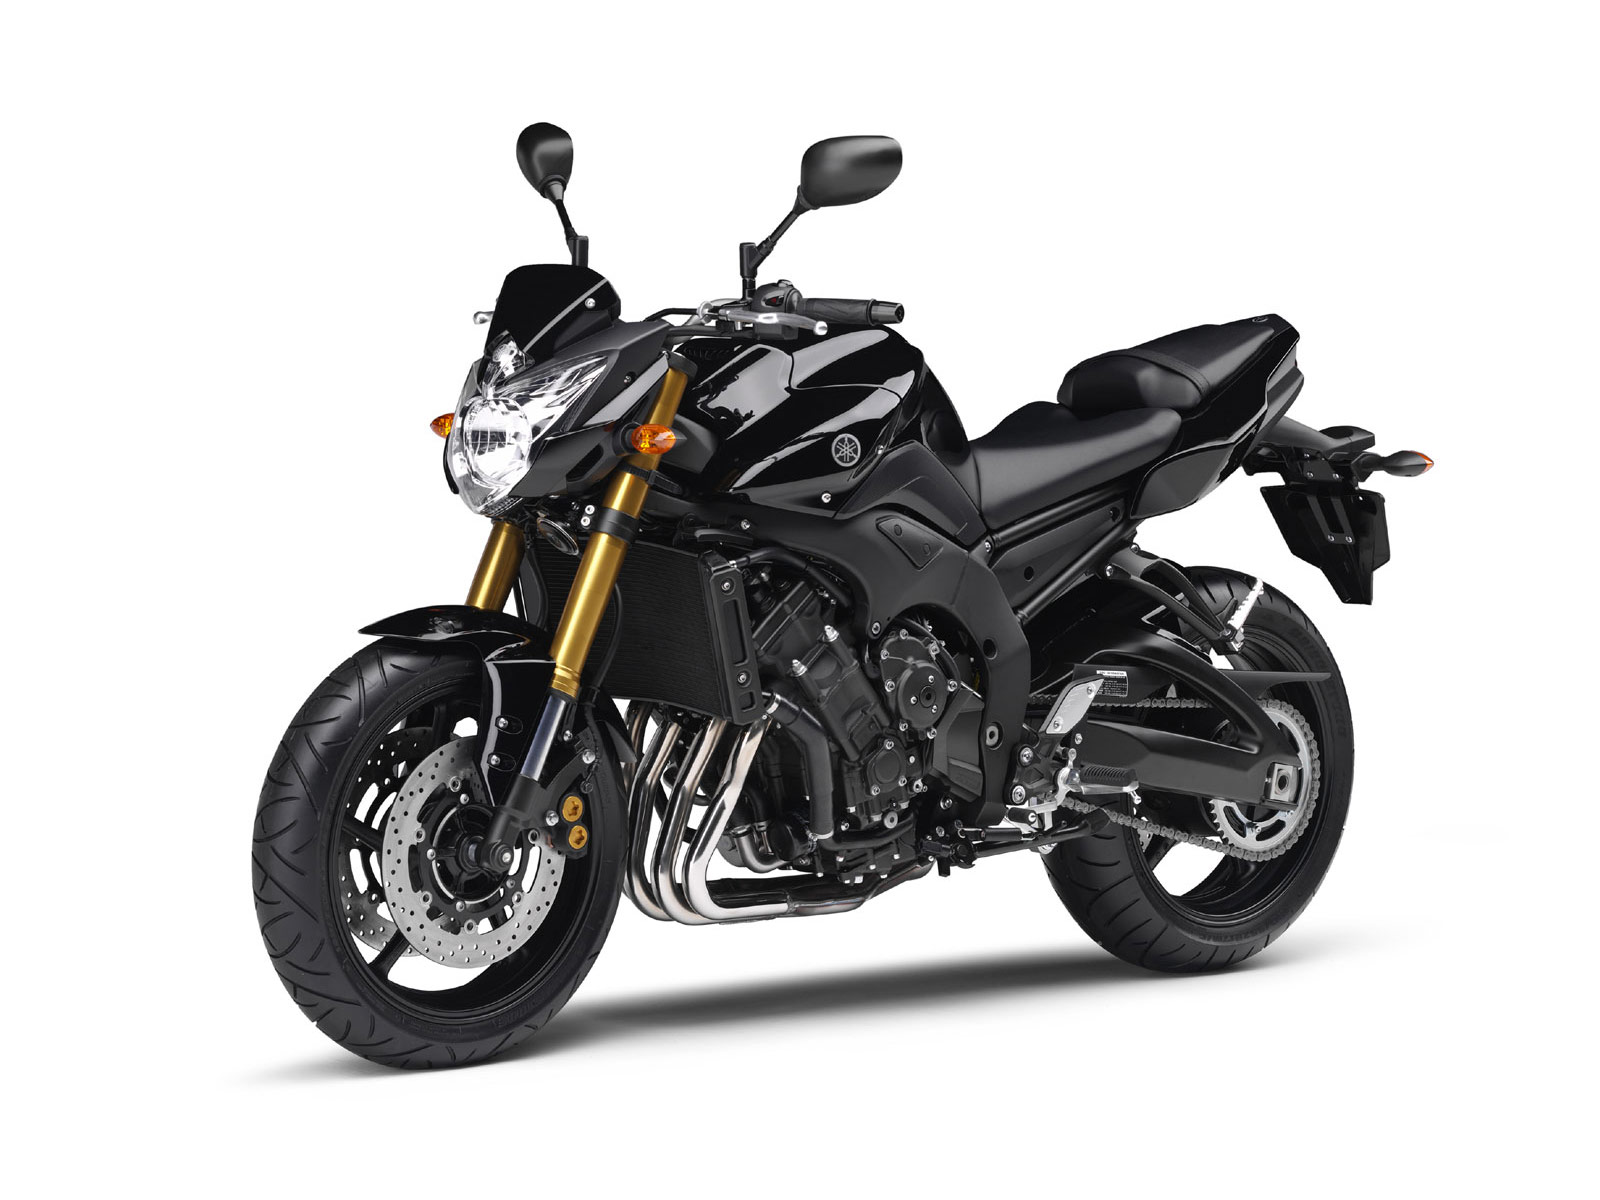 2011 YAMAHA FZ8 Motorcycle Pictures, Review And Specifications